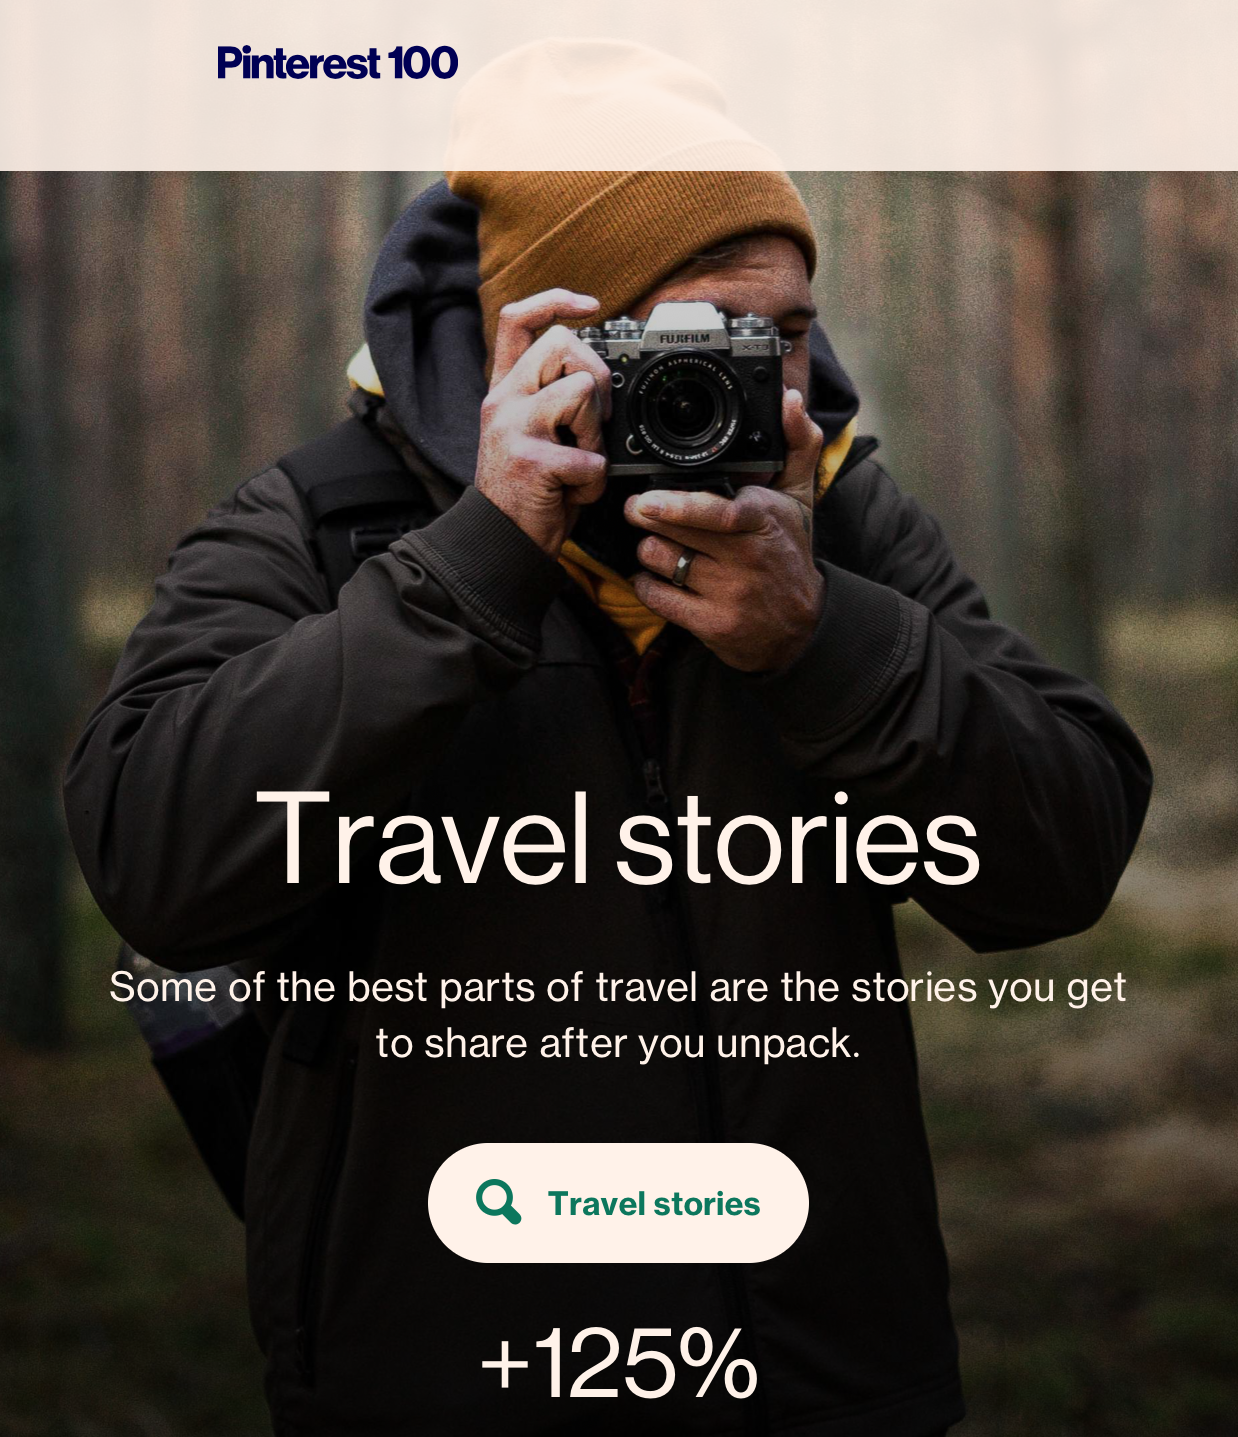 Pinterest 100 Screenshot: 2020 Travel Trends